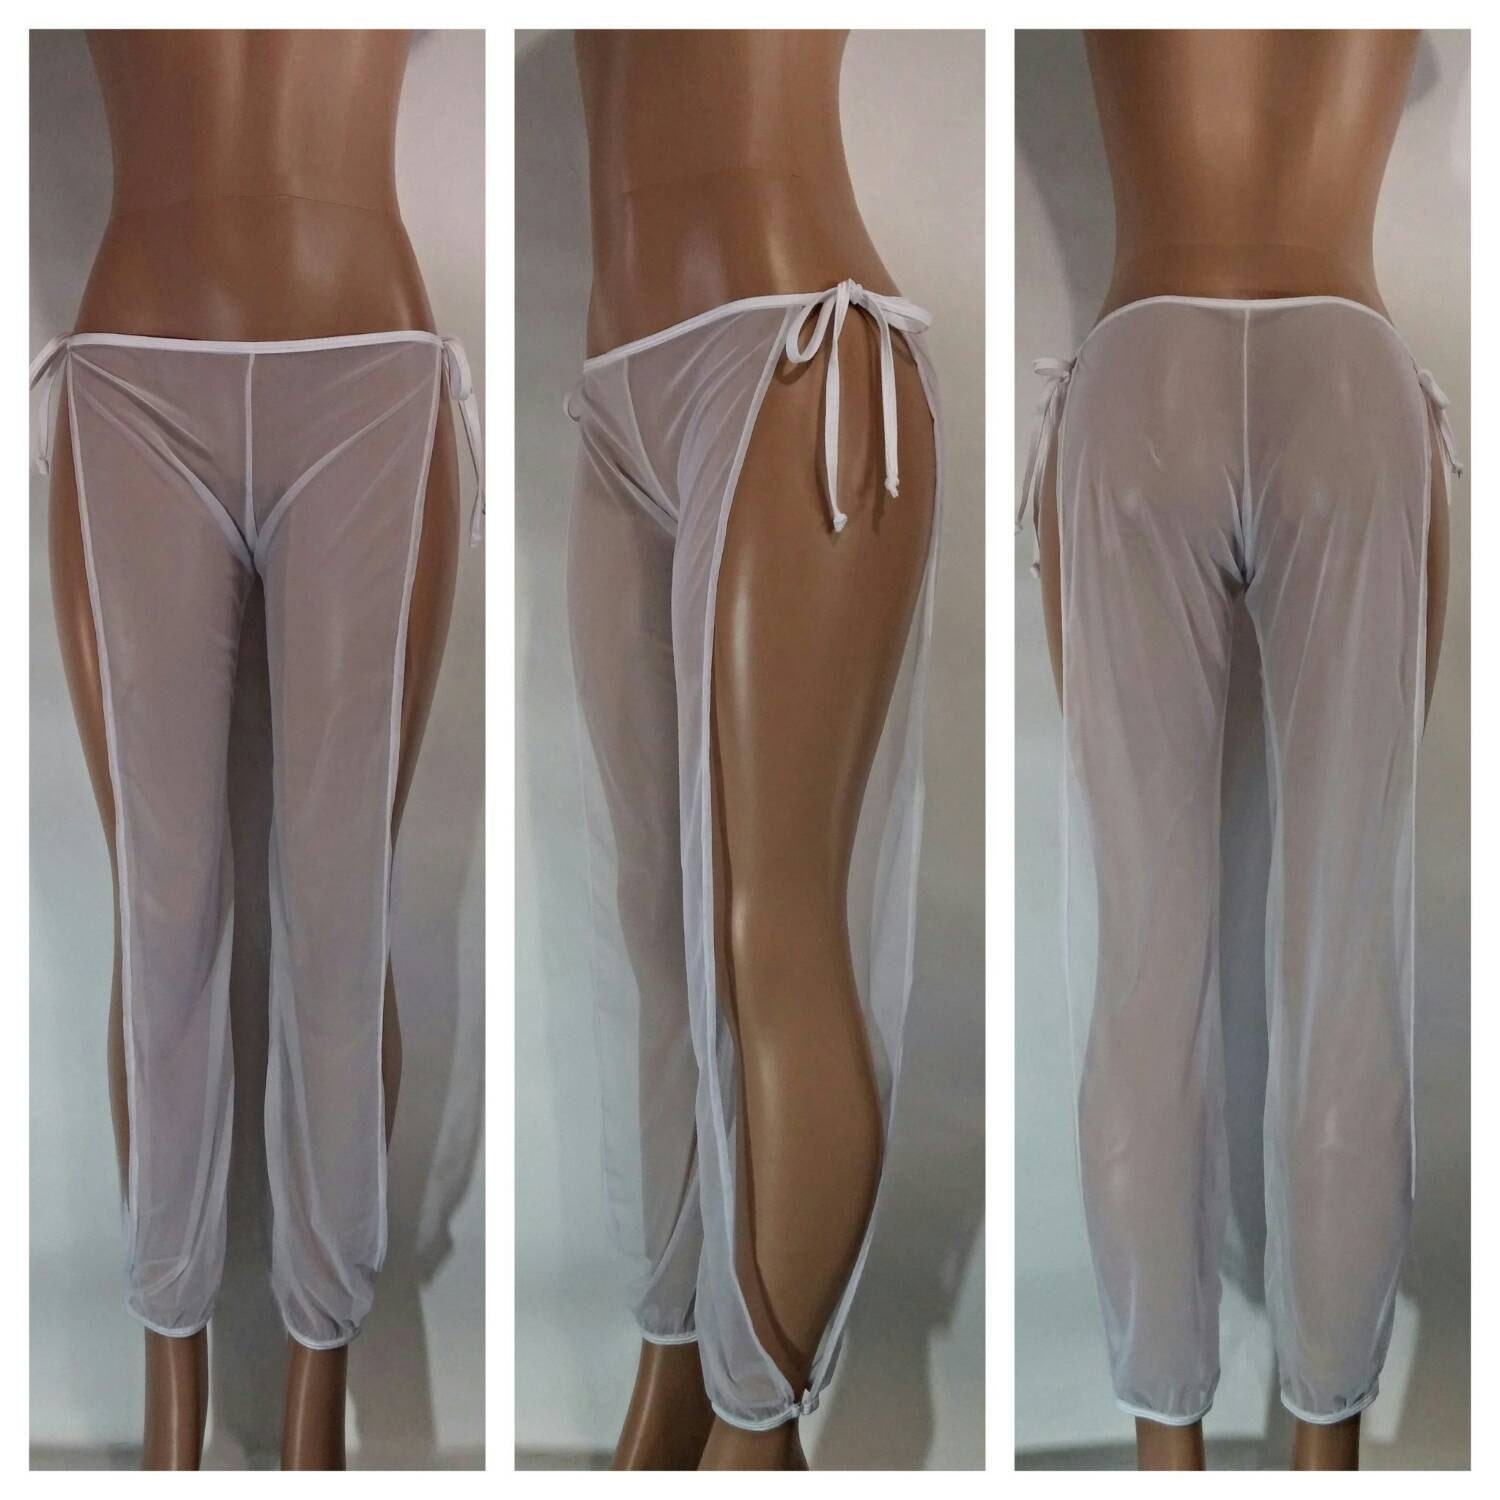 Tie Side Sheer Mesh Beach Pants For Exotic Dancers or a Sexy